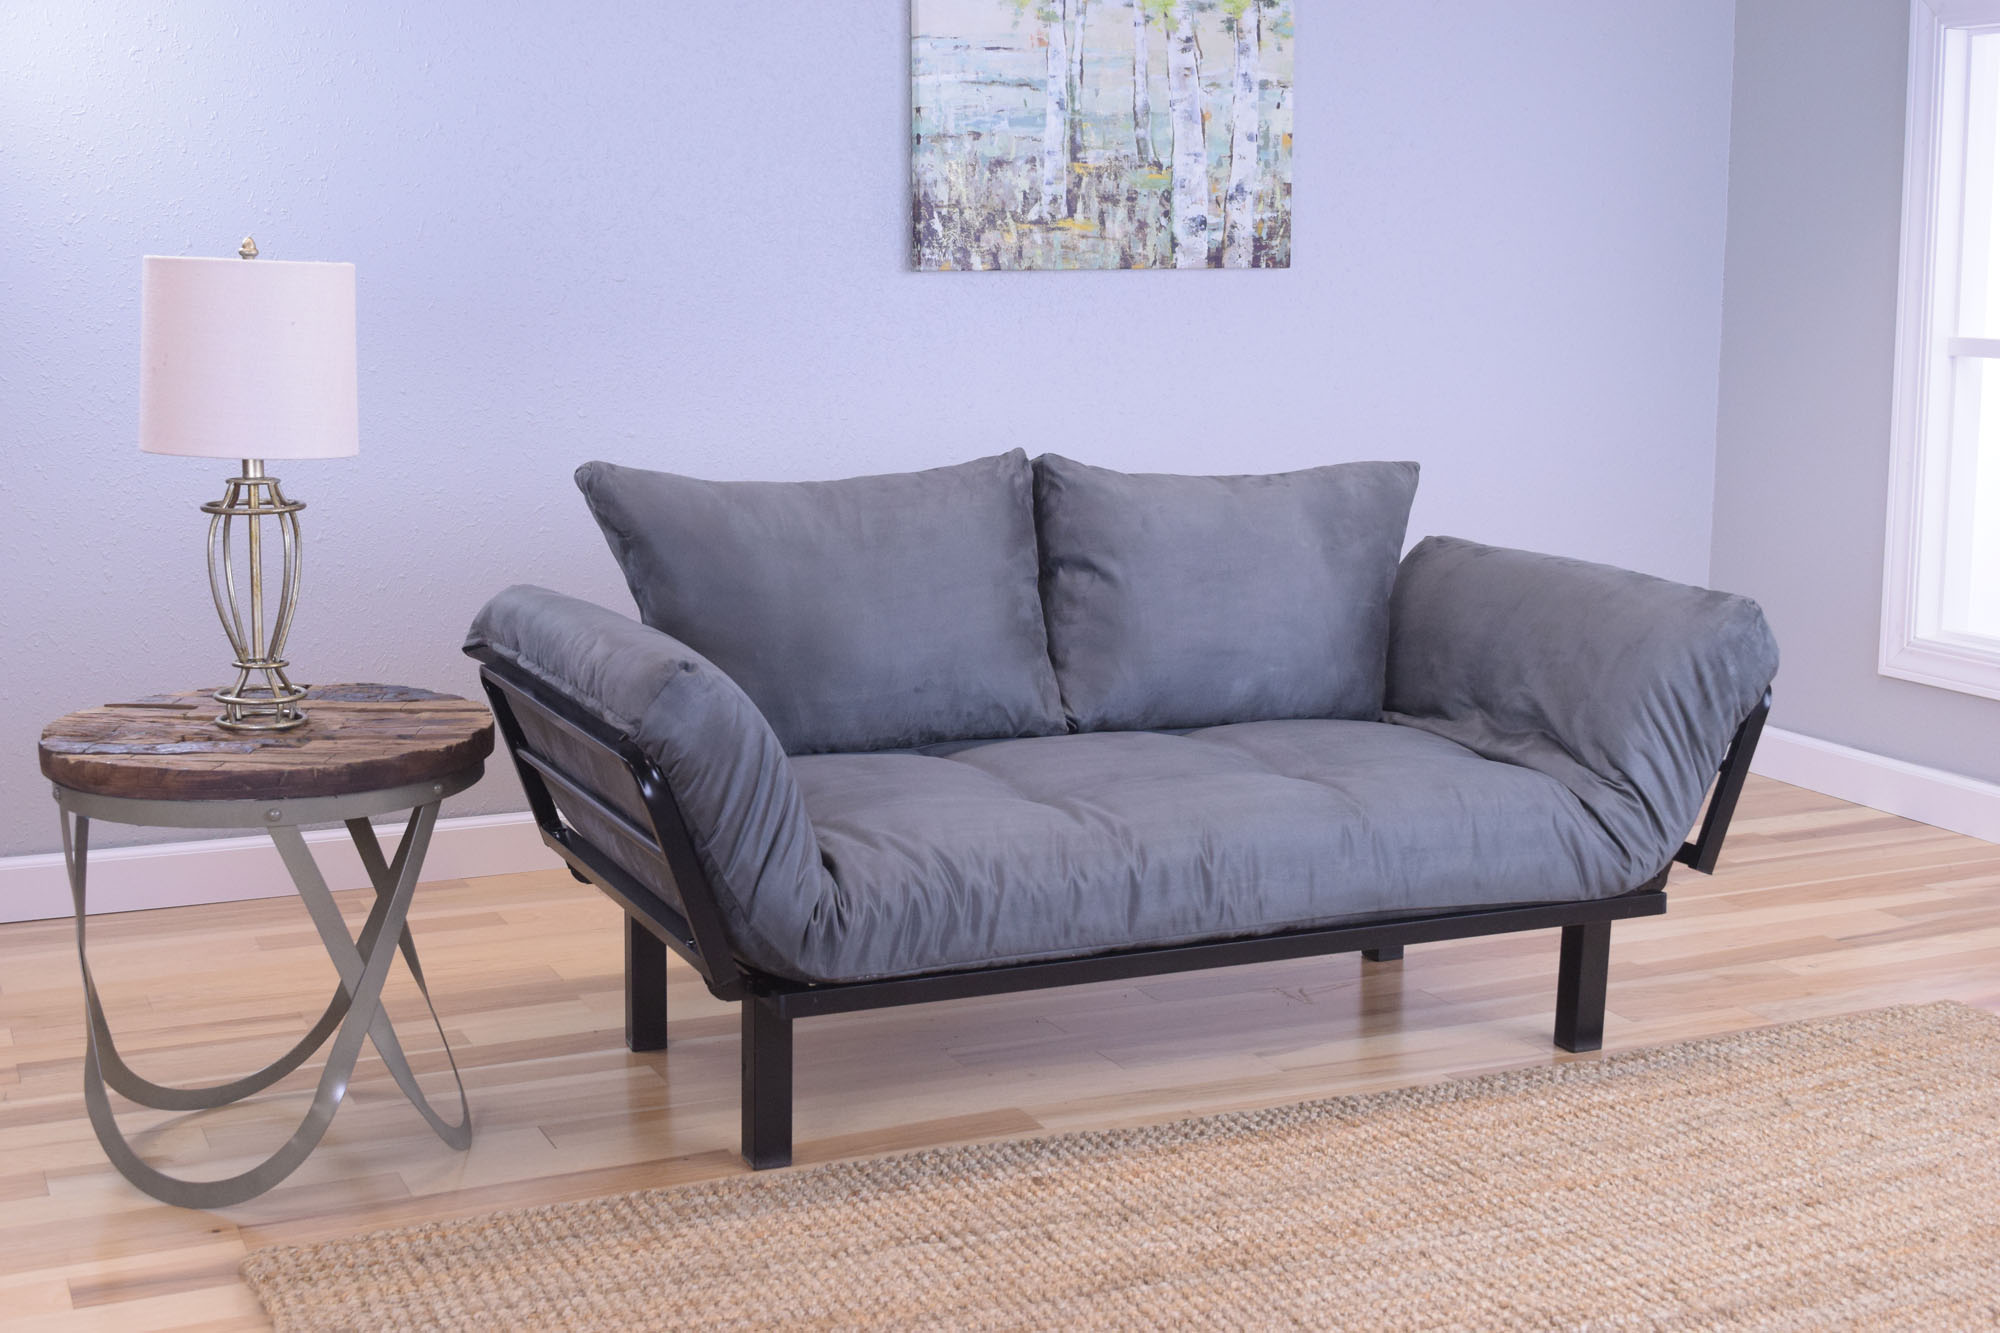 Spacely Futon Daybed Lounger with Mattress Suede Gray by Kodiak